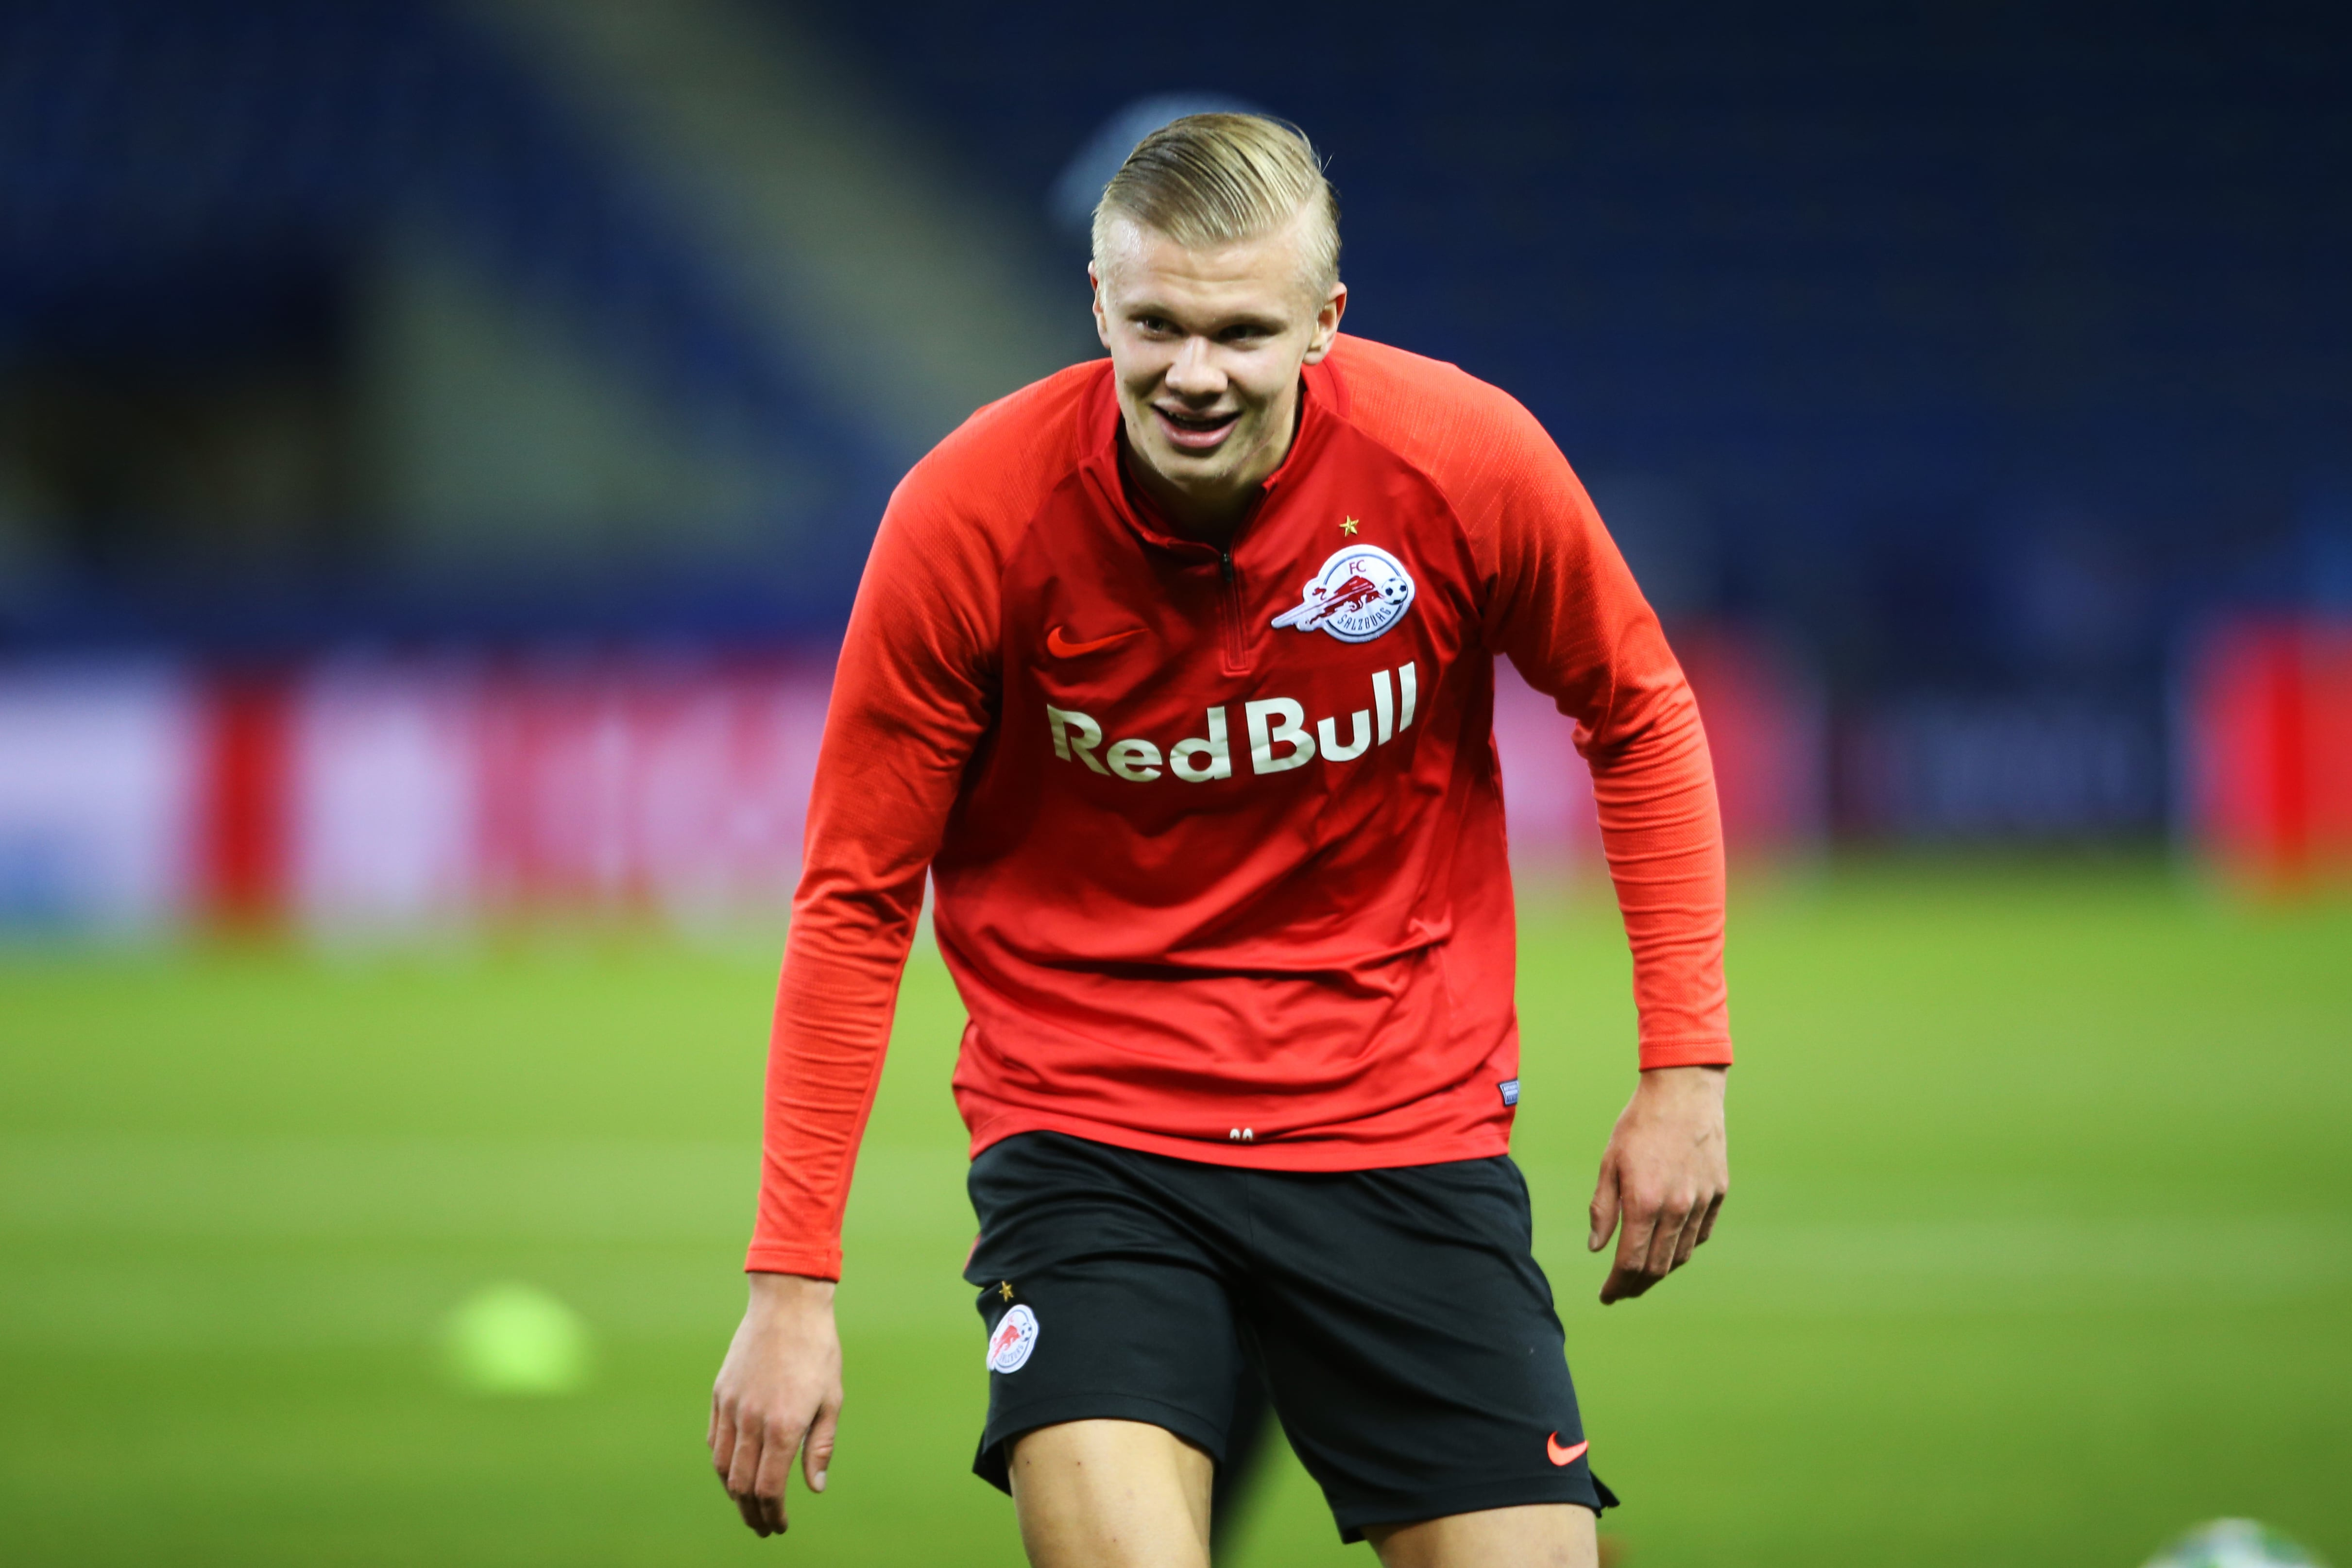 Manchester United firm favorites to land Erling Haaland